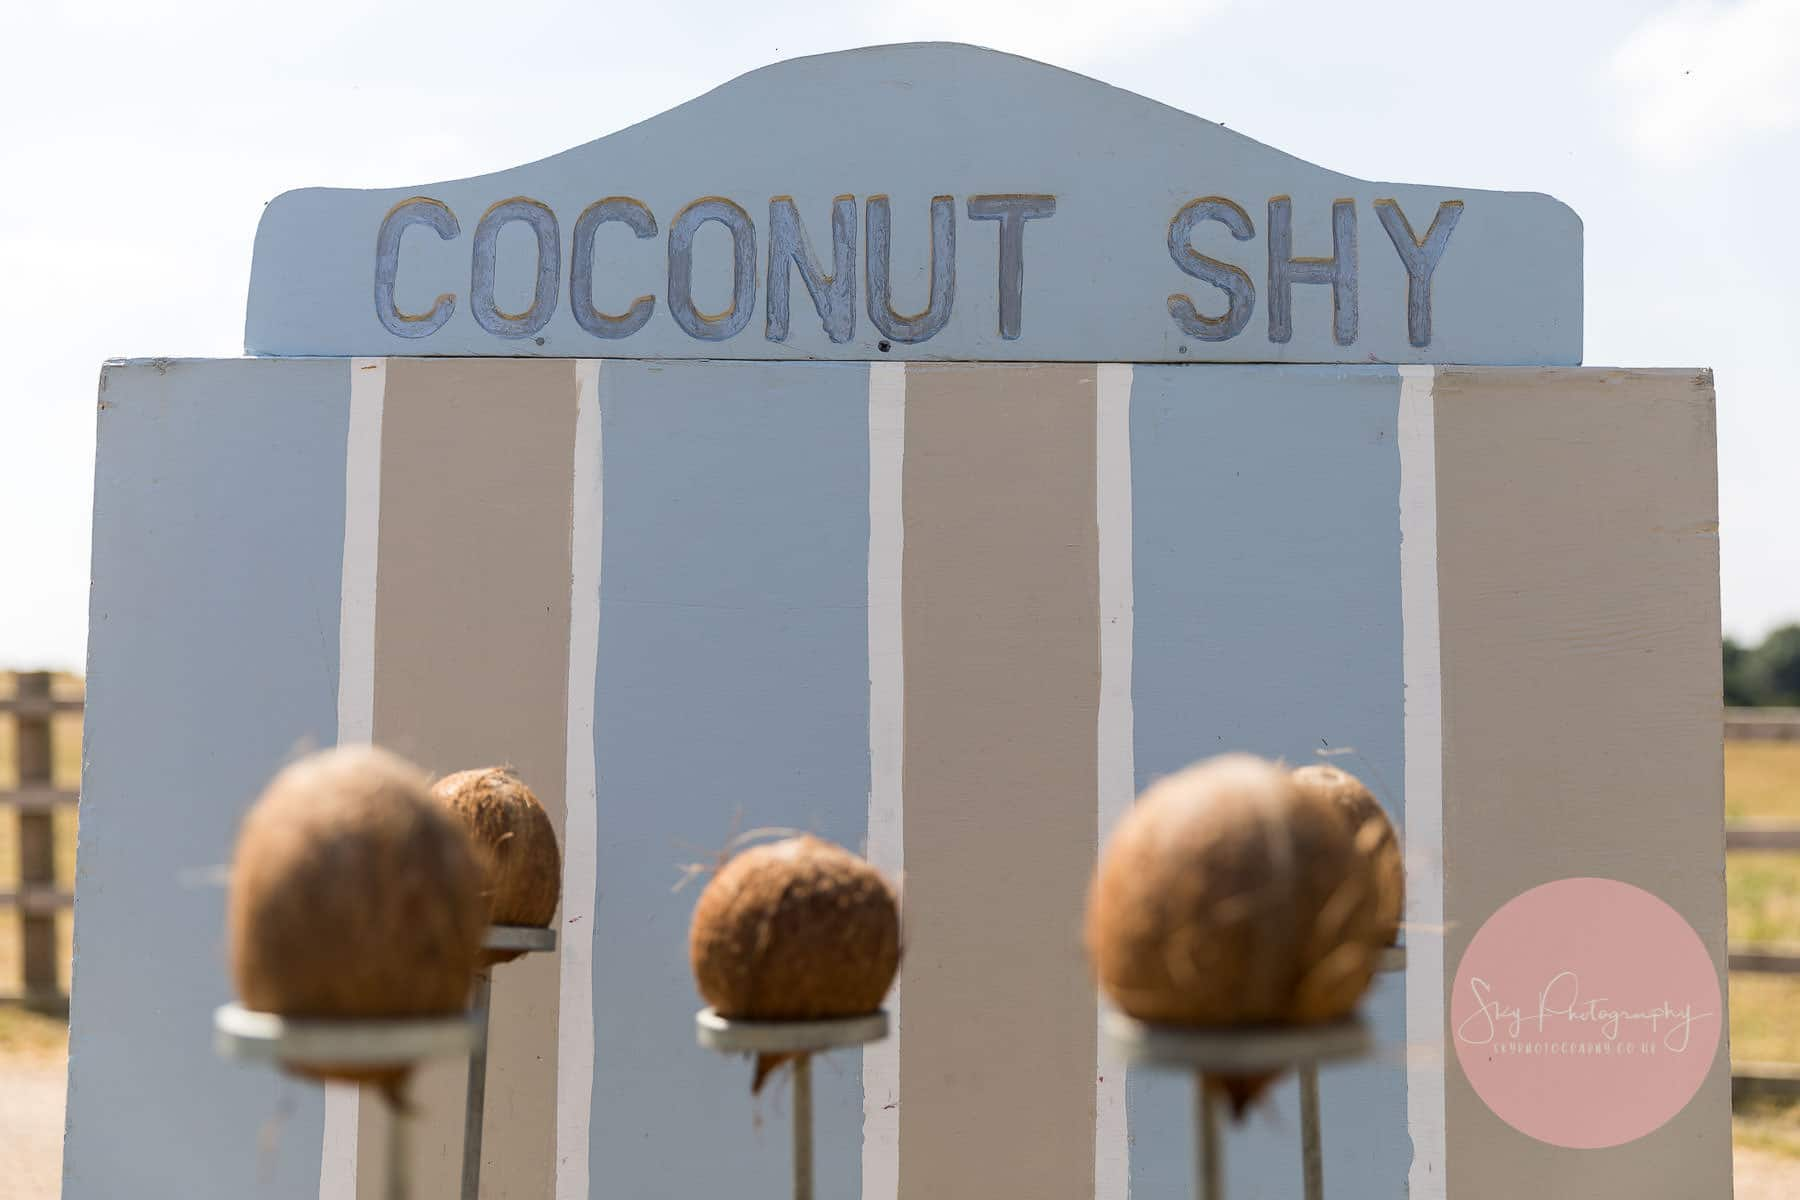 Coconut shy at dodford manor